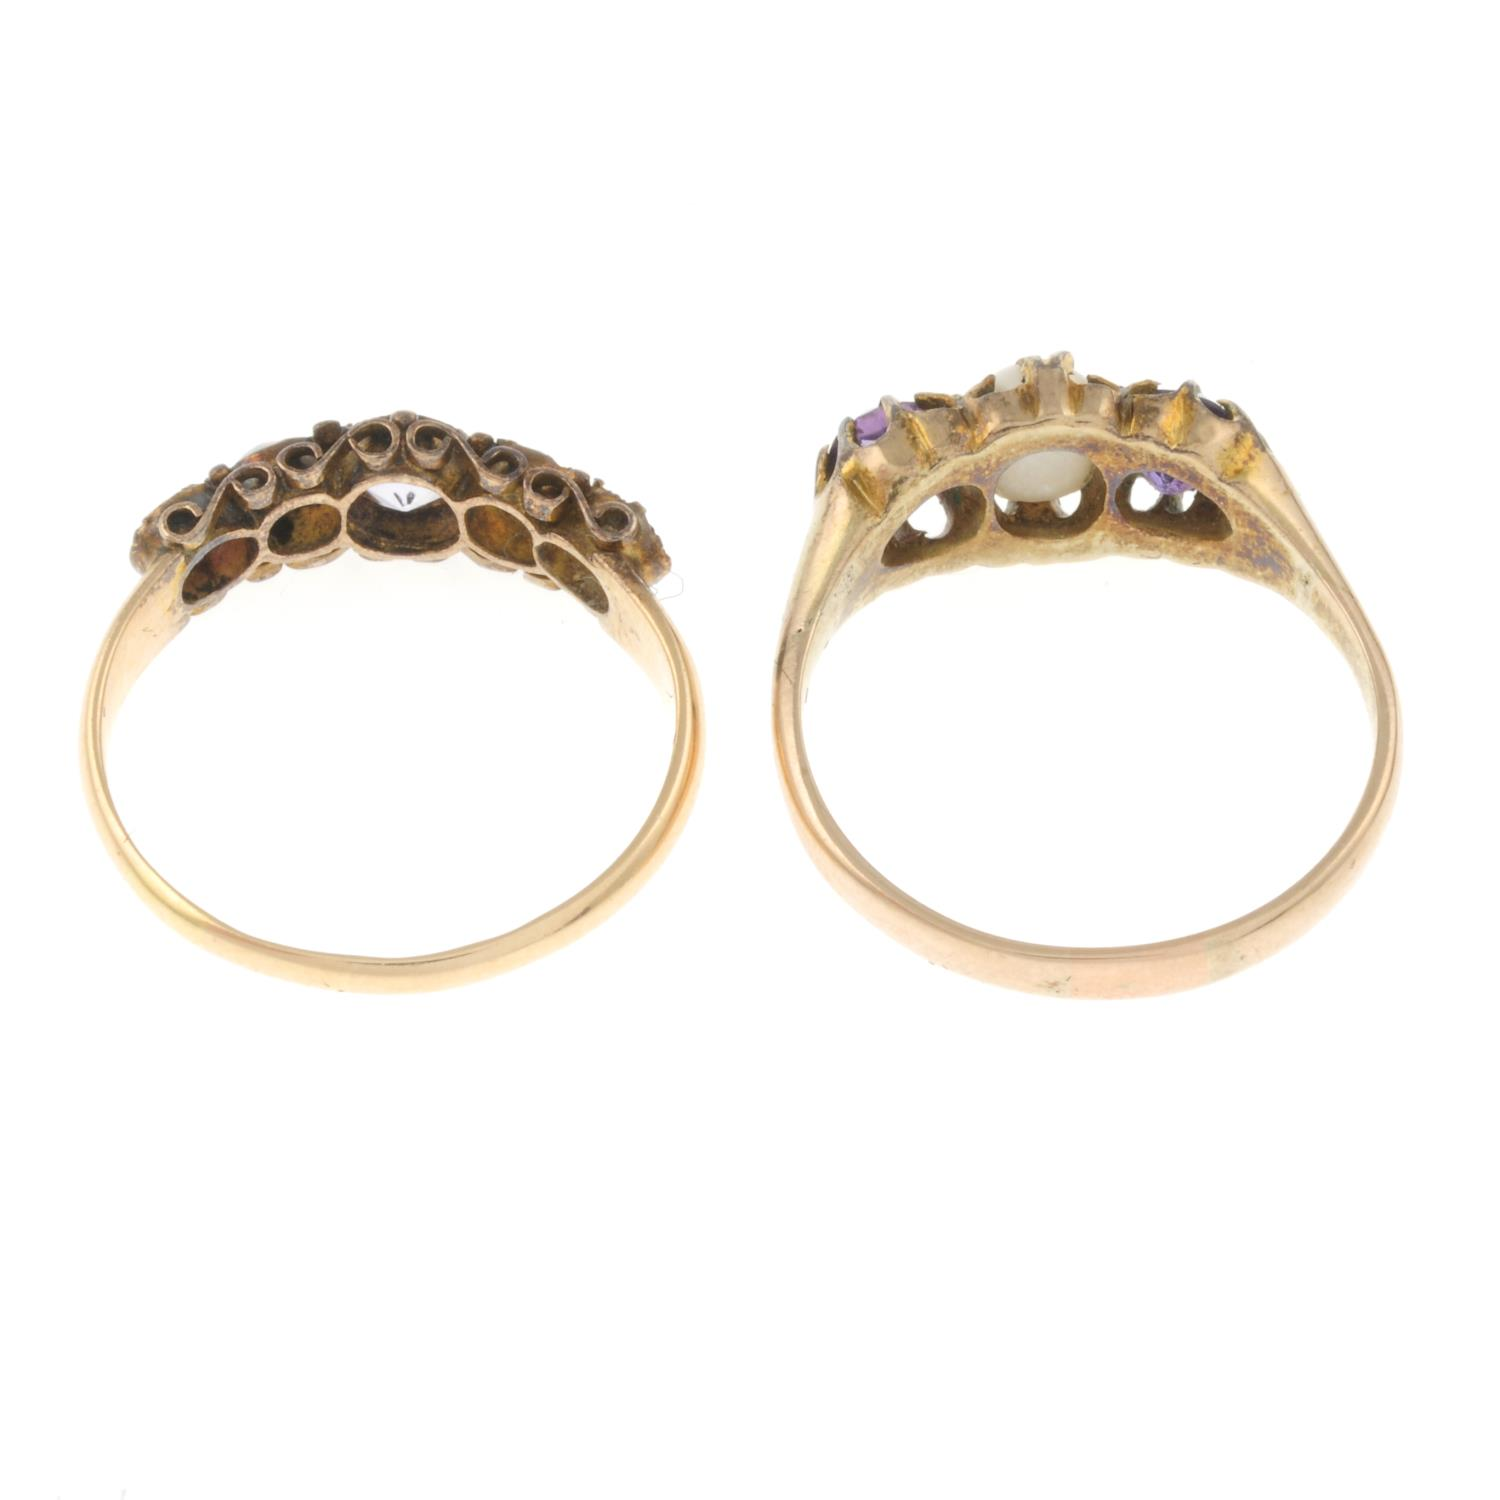 An 15ct gold amethyst and opal ring and an amethyst and cultured pearl ring. - Image 3 of 3